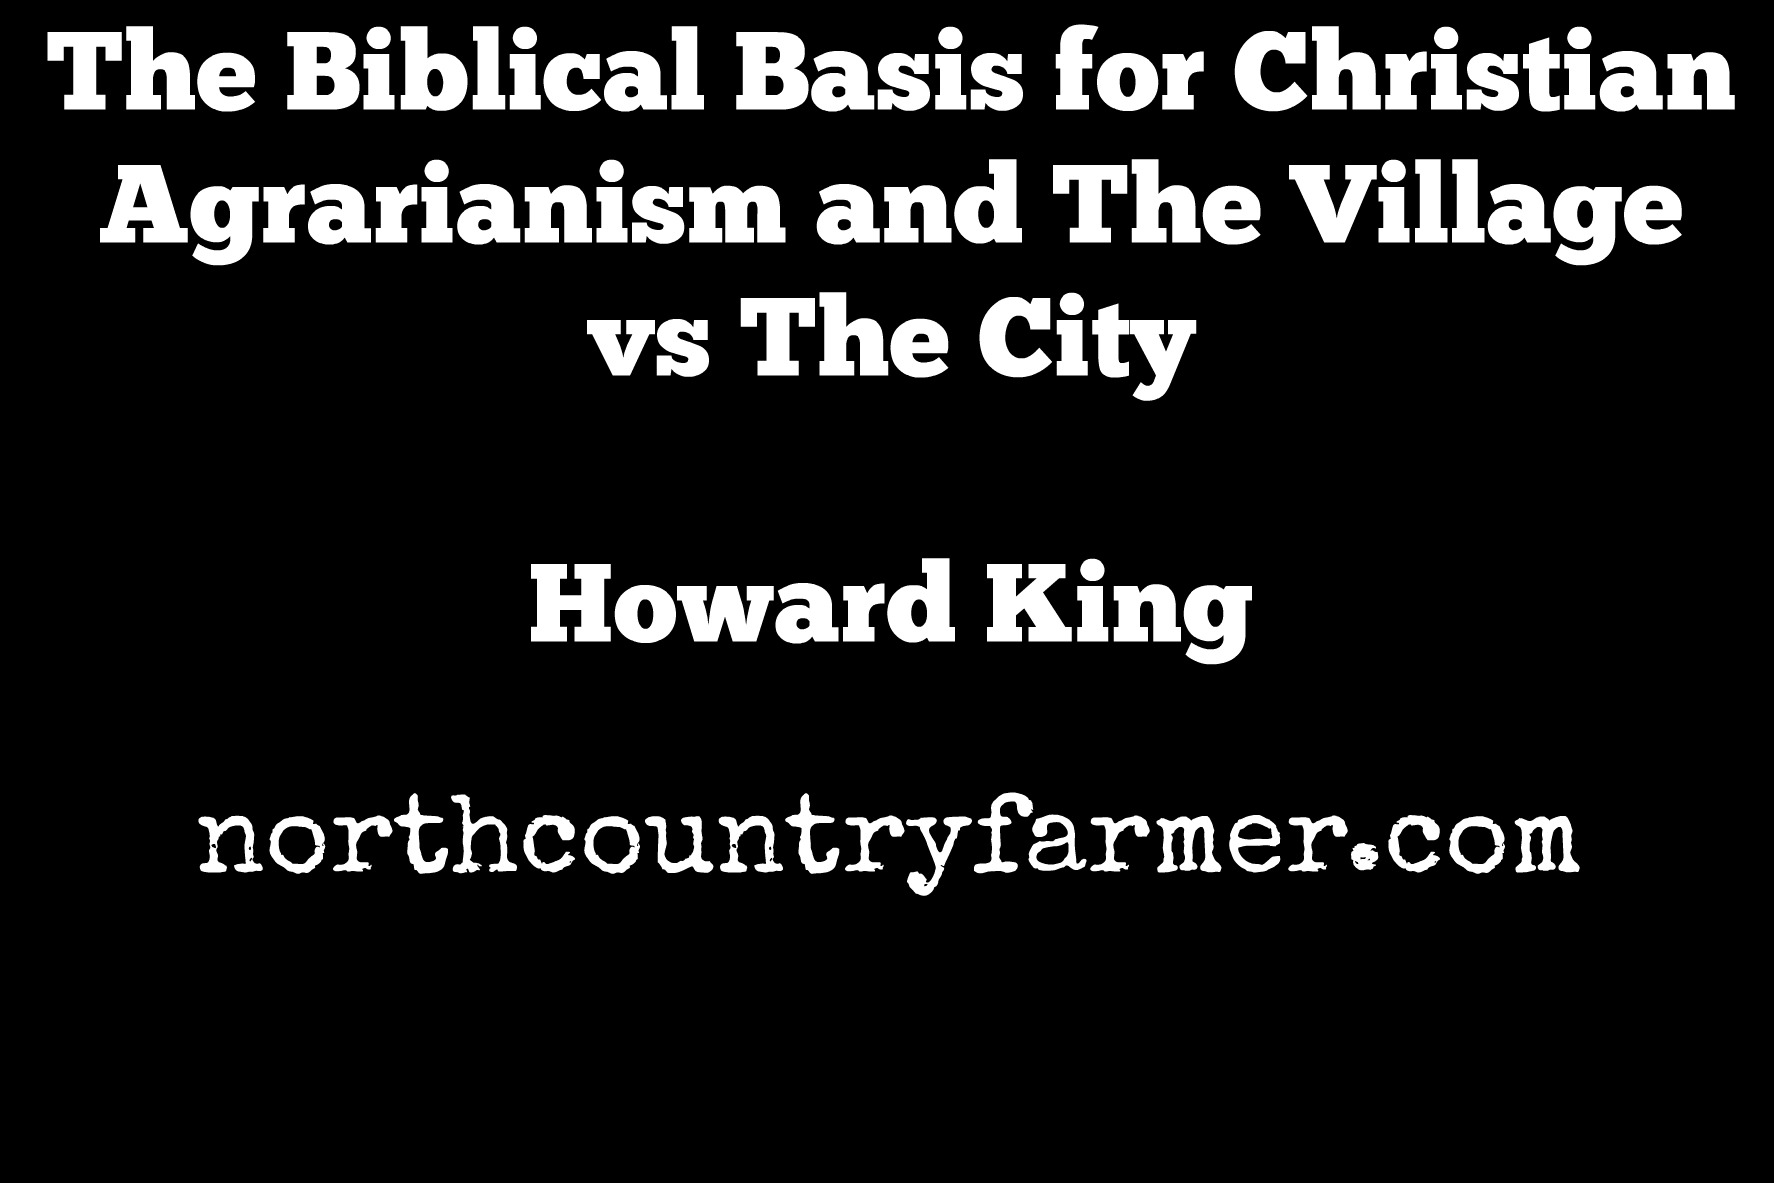 The Biblical Basis for Christian Agrarianism and The Village vs The City